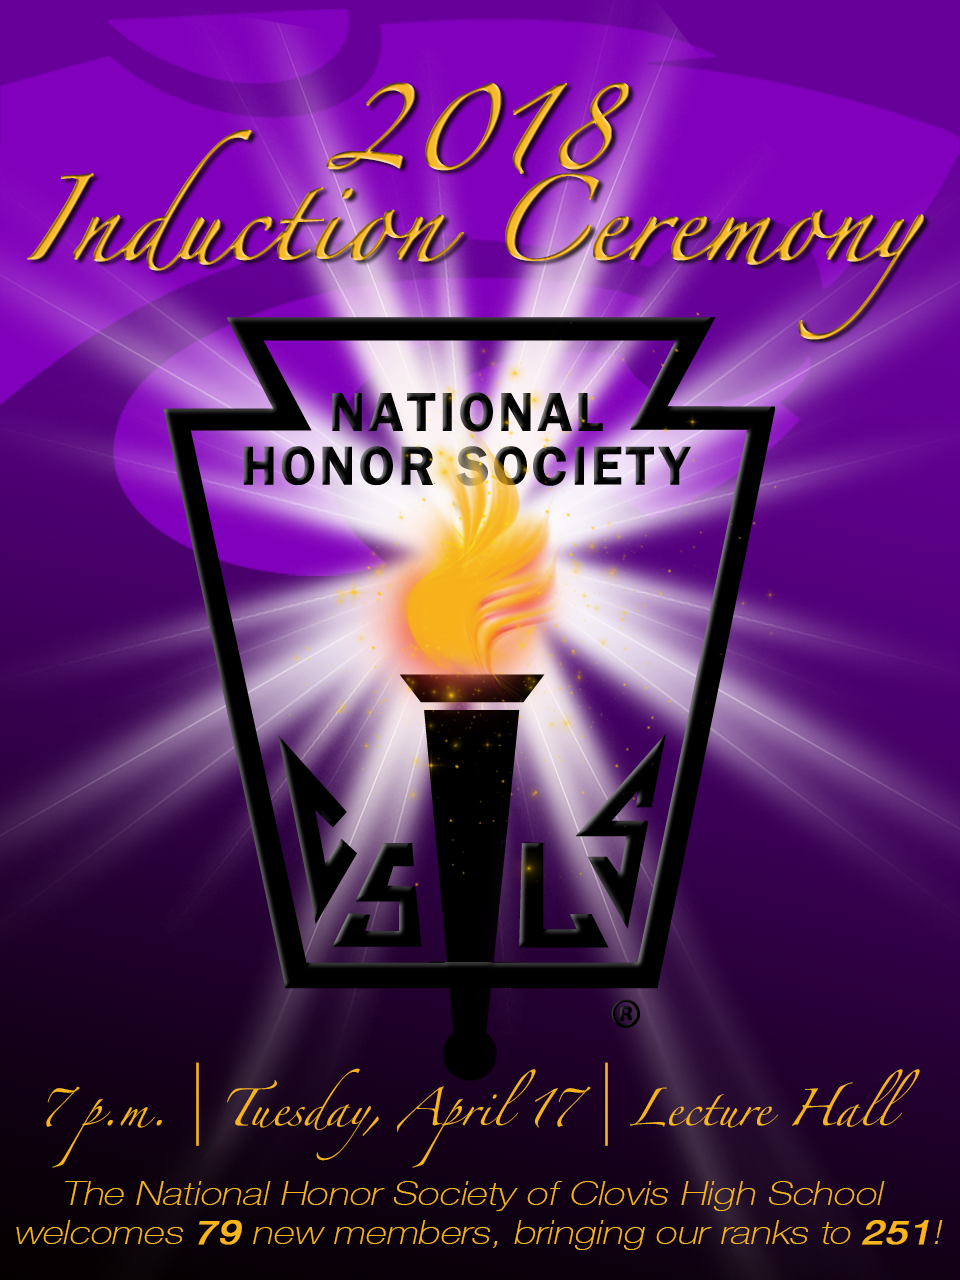 Image with text announcing NHS Induction Ceremony